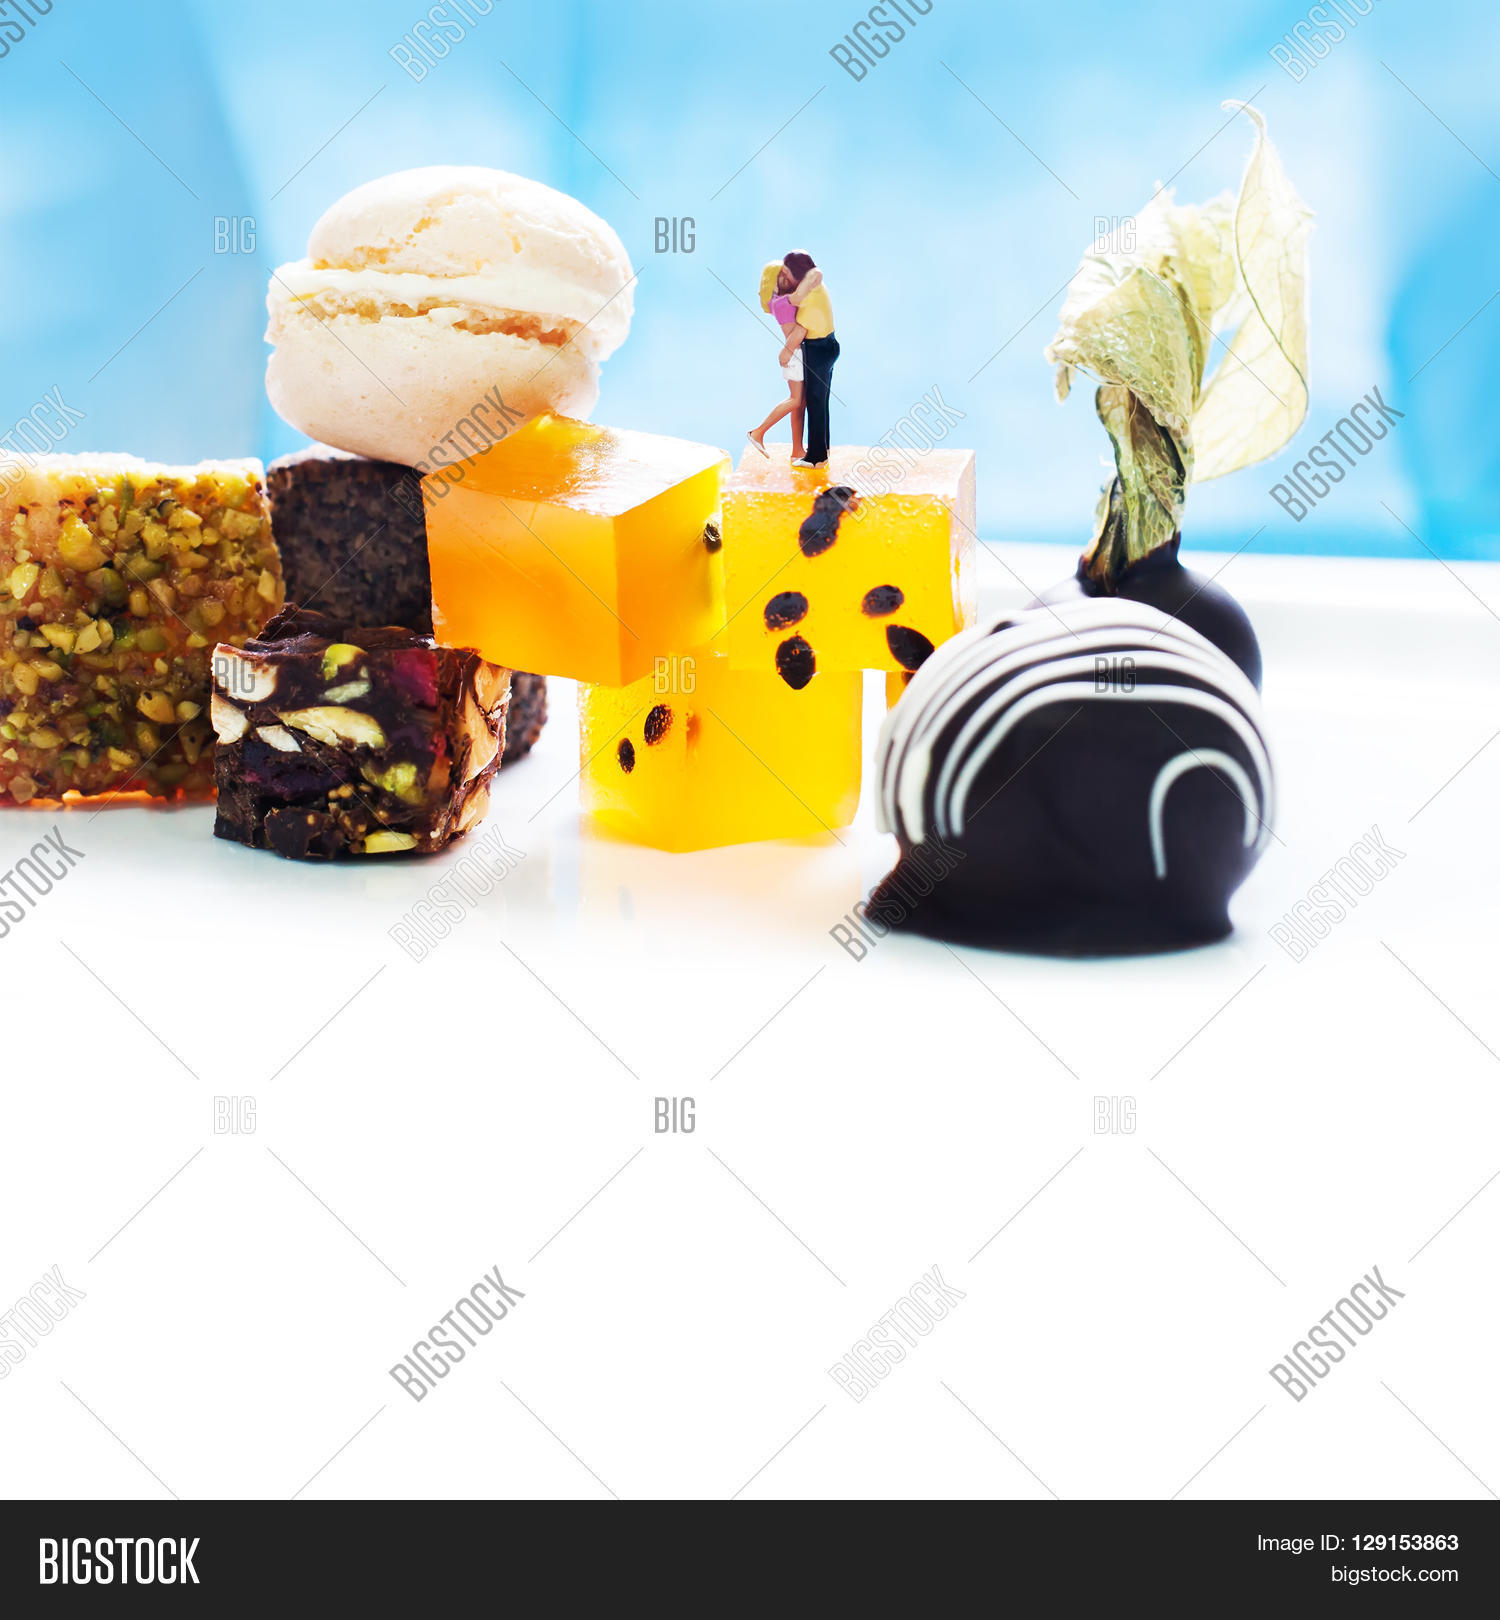 dessert menu template image photo free trial bigstock